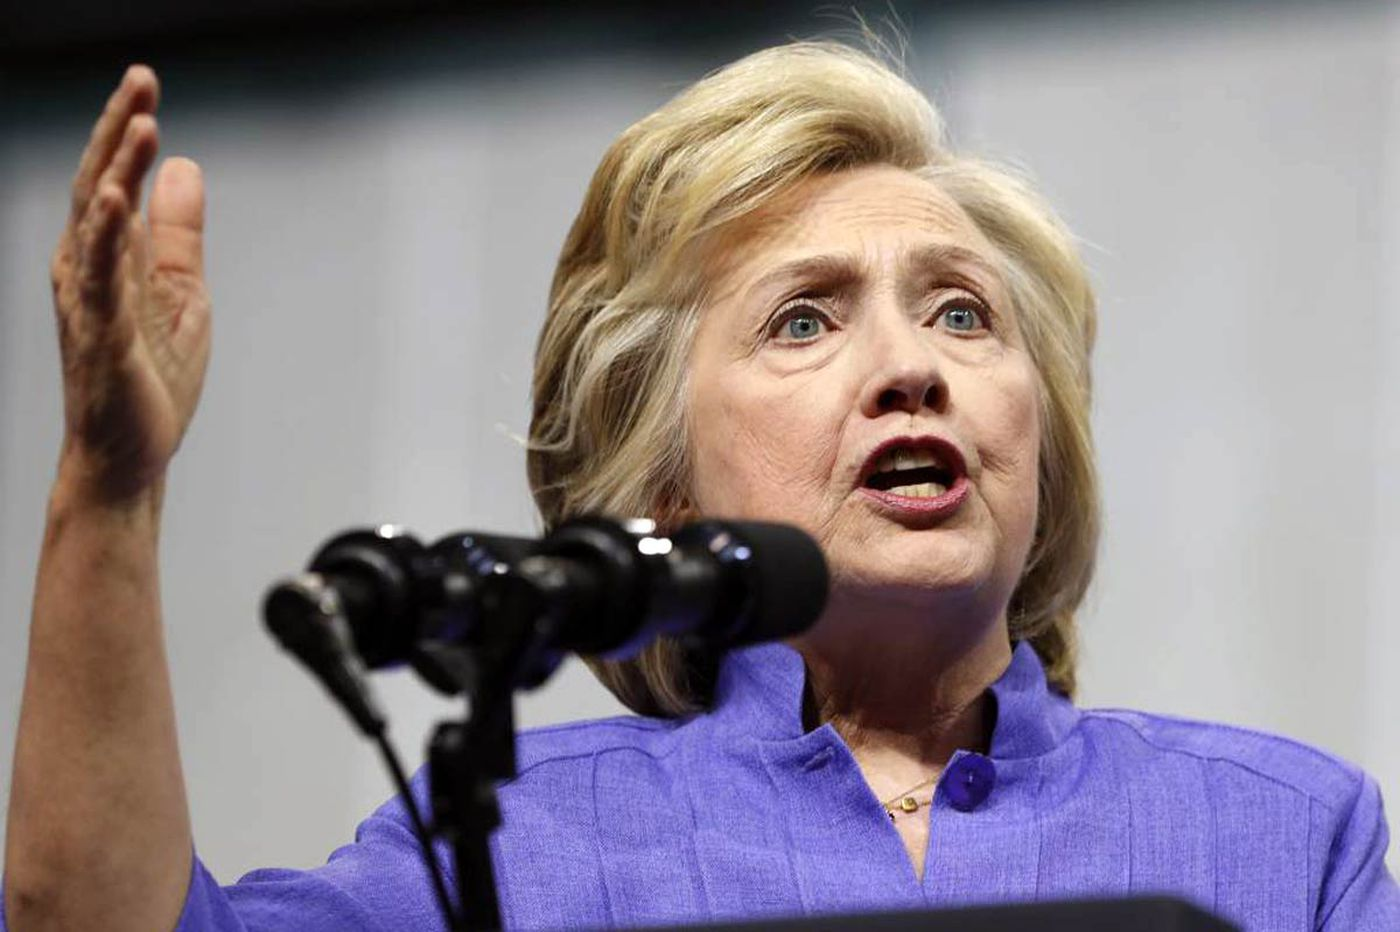 Commentary: Special prosecutor needed to hold Clinton accountable